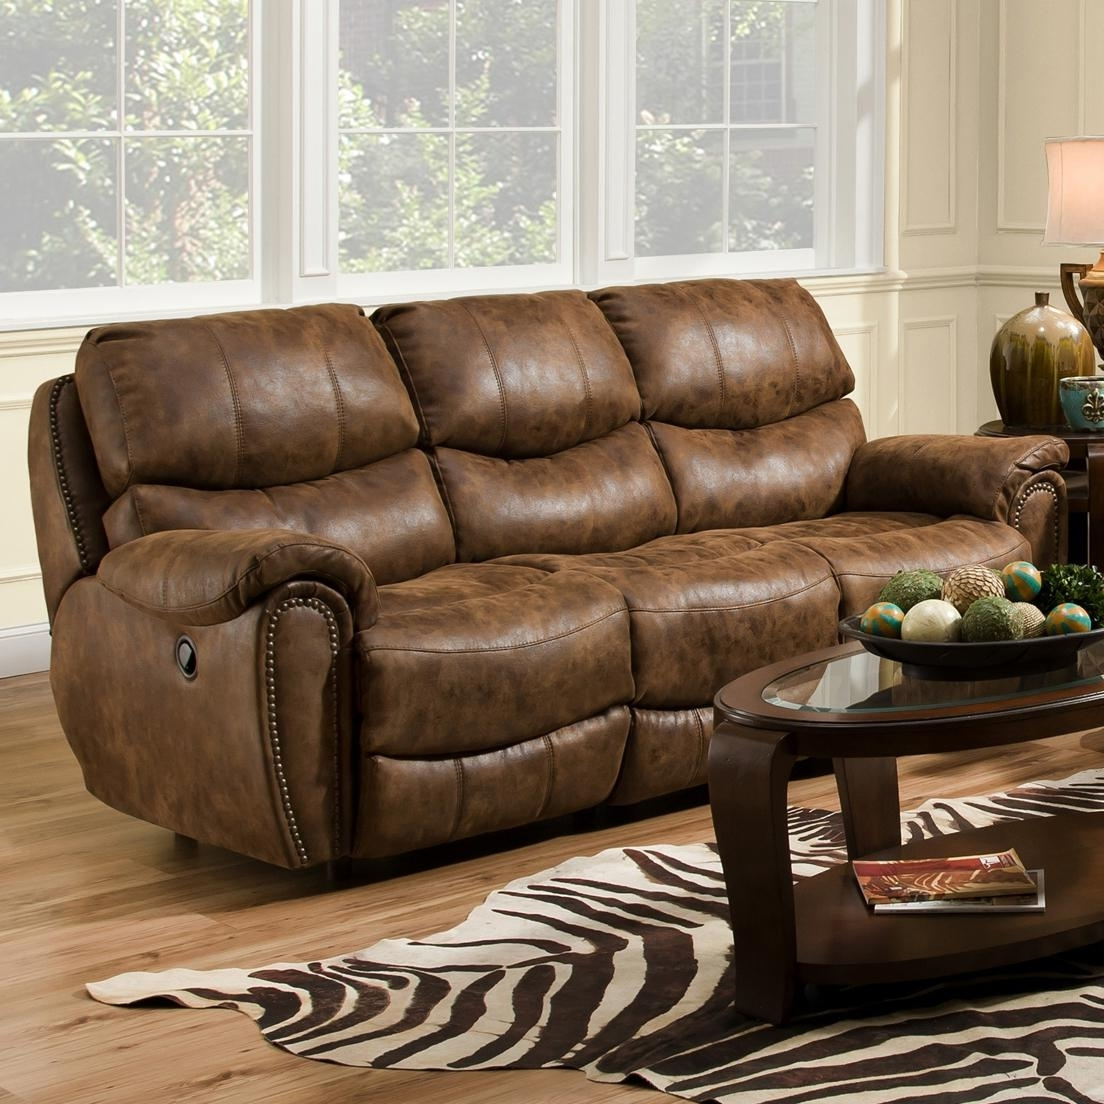 Widely Used Richmond Sofas With Regard To Reclining Sofa With Nail Head Trim – Richmondfranklin – Wilcox (View 15 of 15)